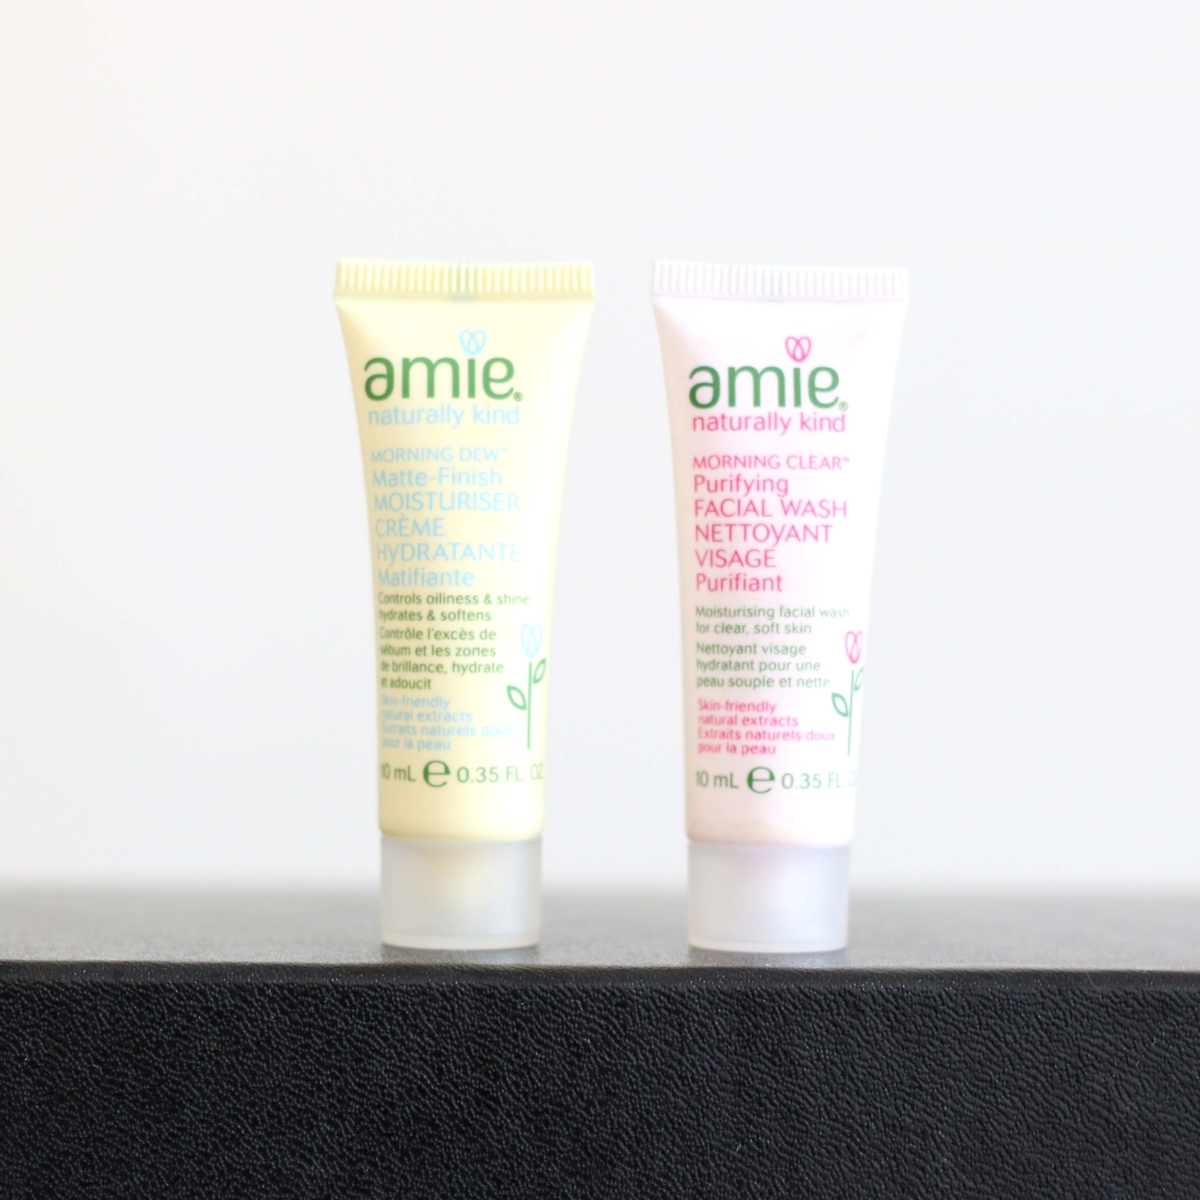 Latest in Beauty Build Your Own Box Review - Amie Morning Clean Facial Wash & Morning Dew Moisturiser Duo